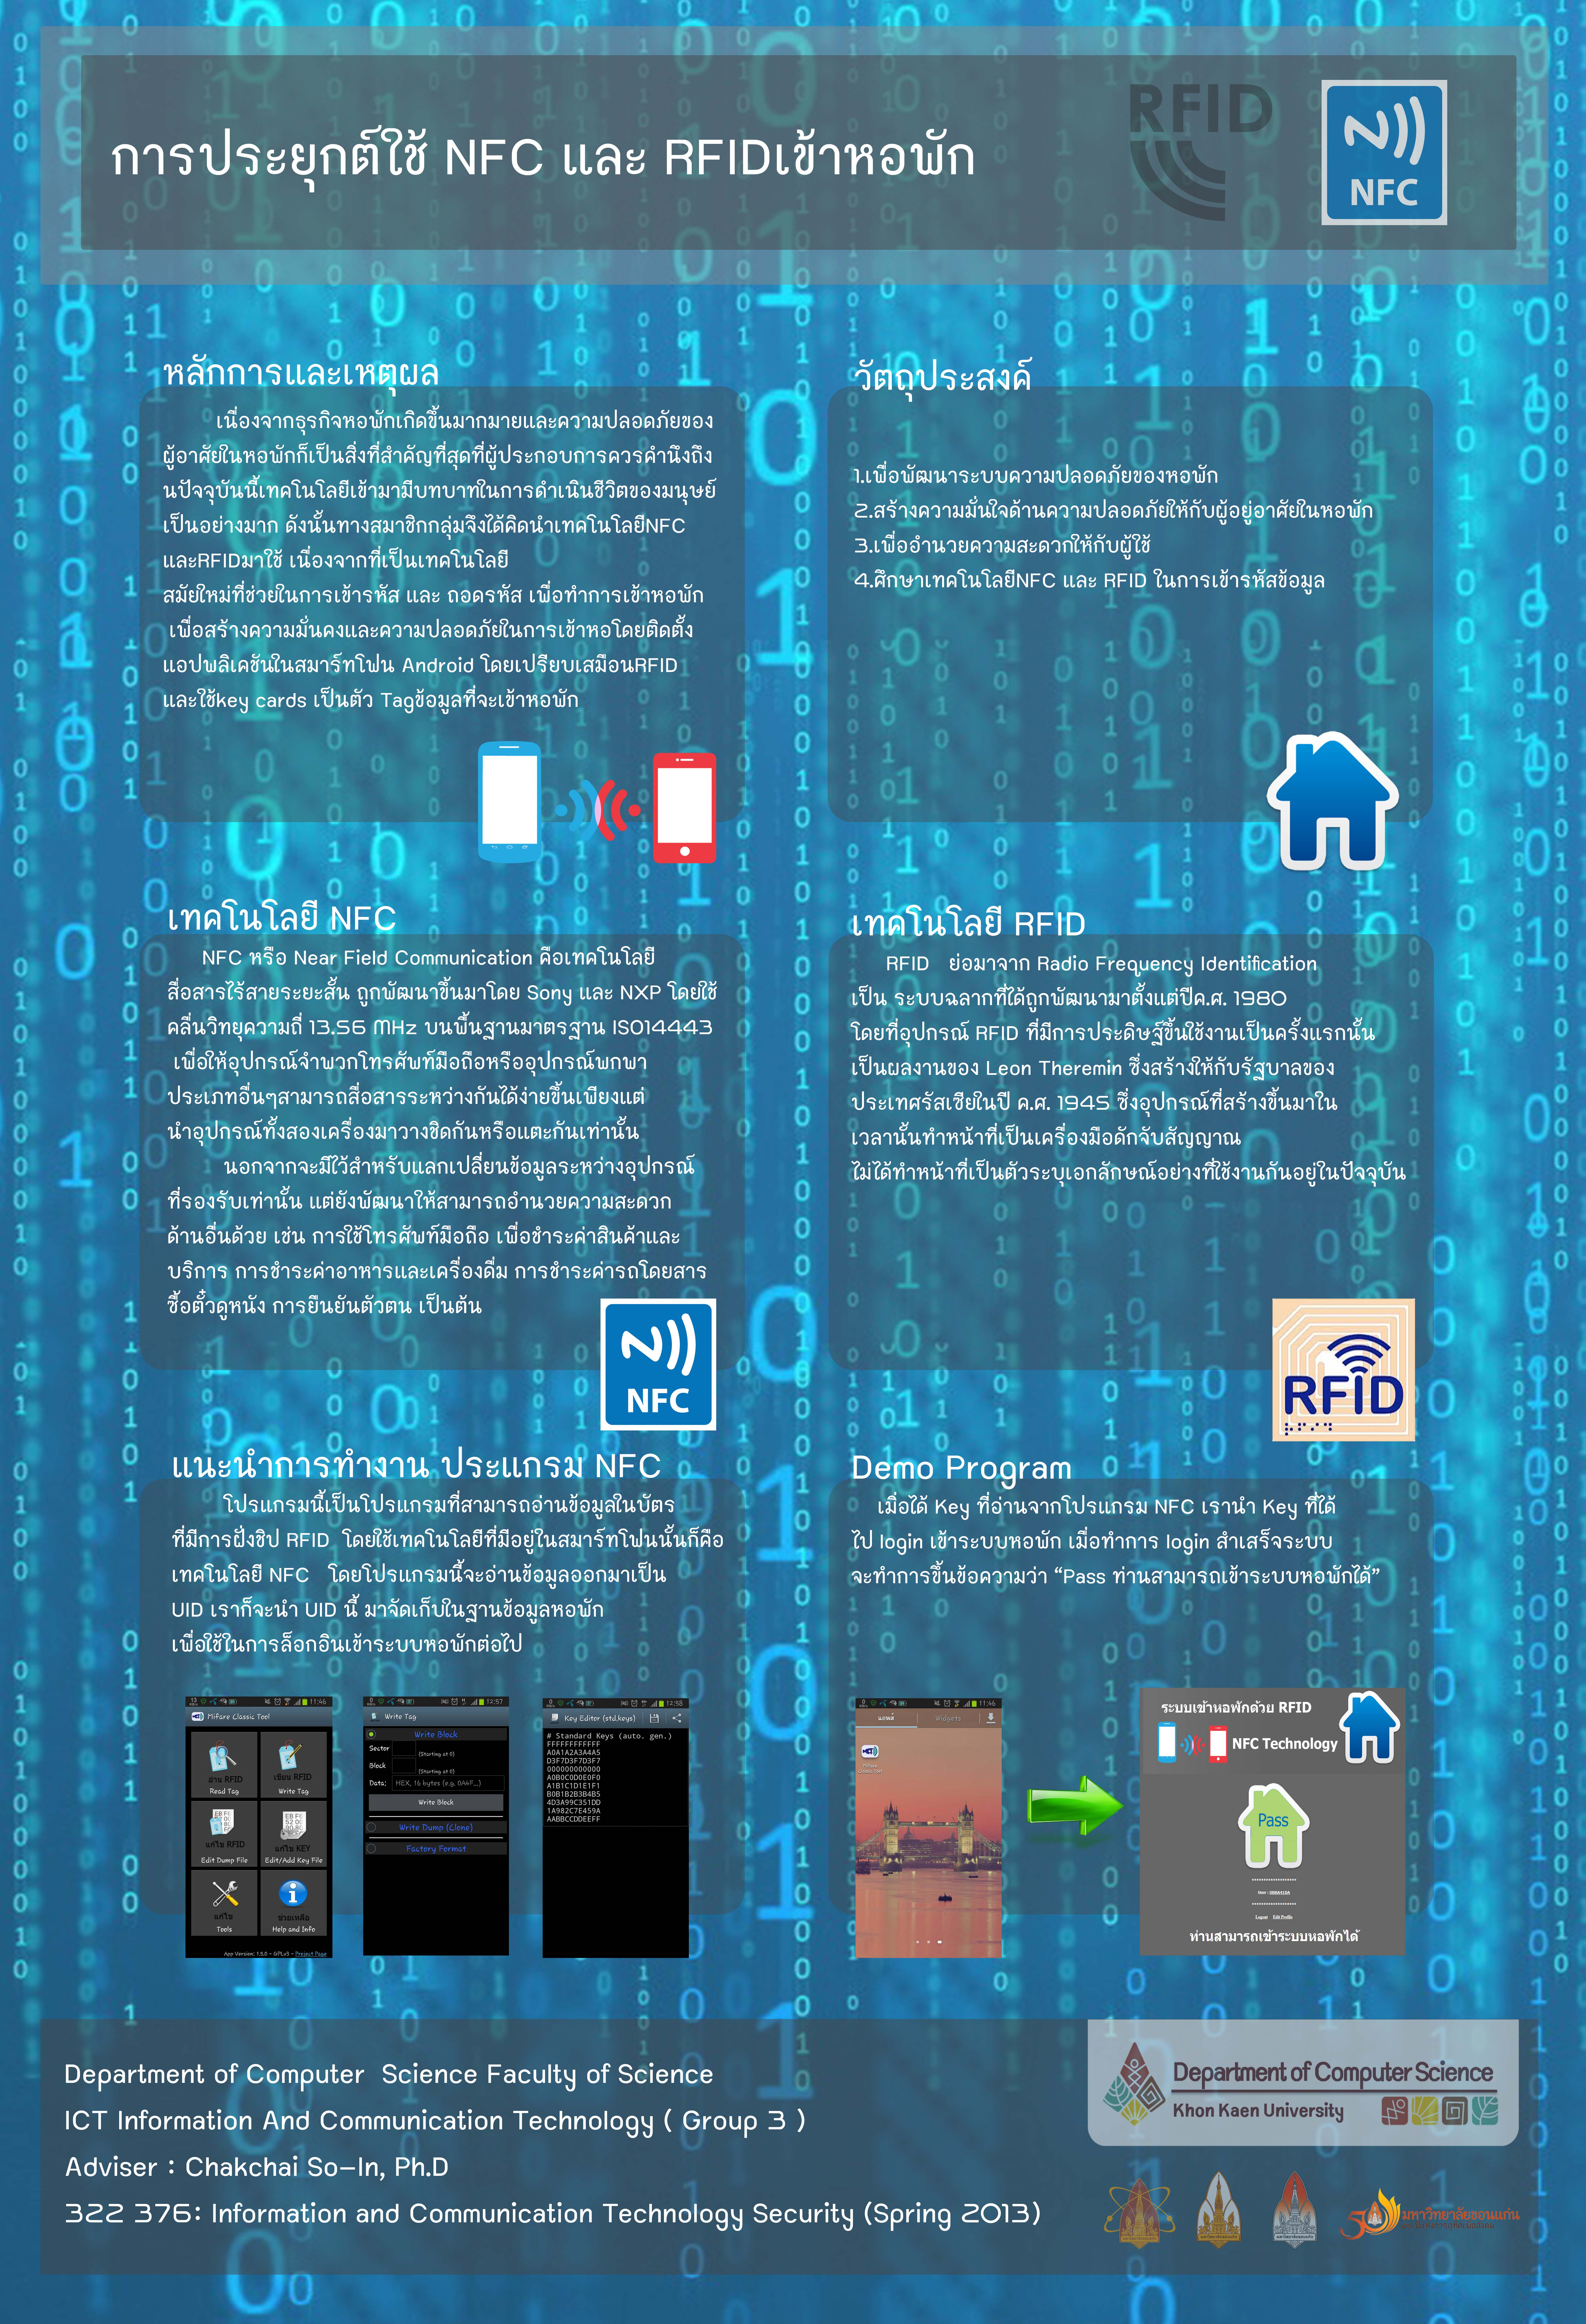 322 376: Information and Communication Technology Security (Spring 2013)